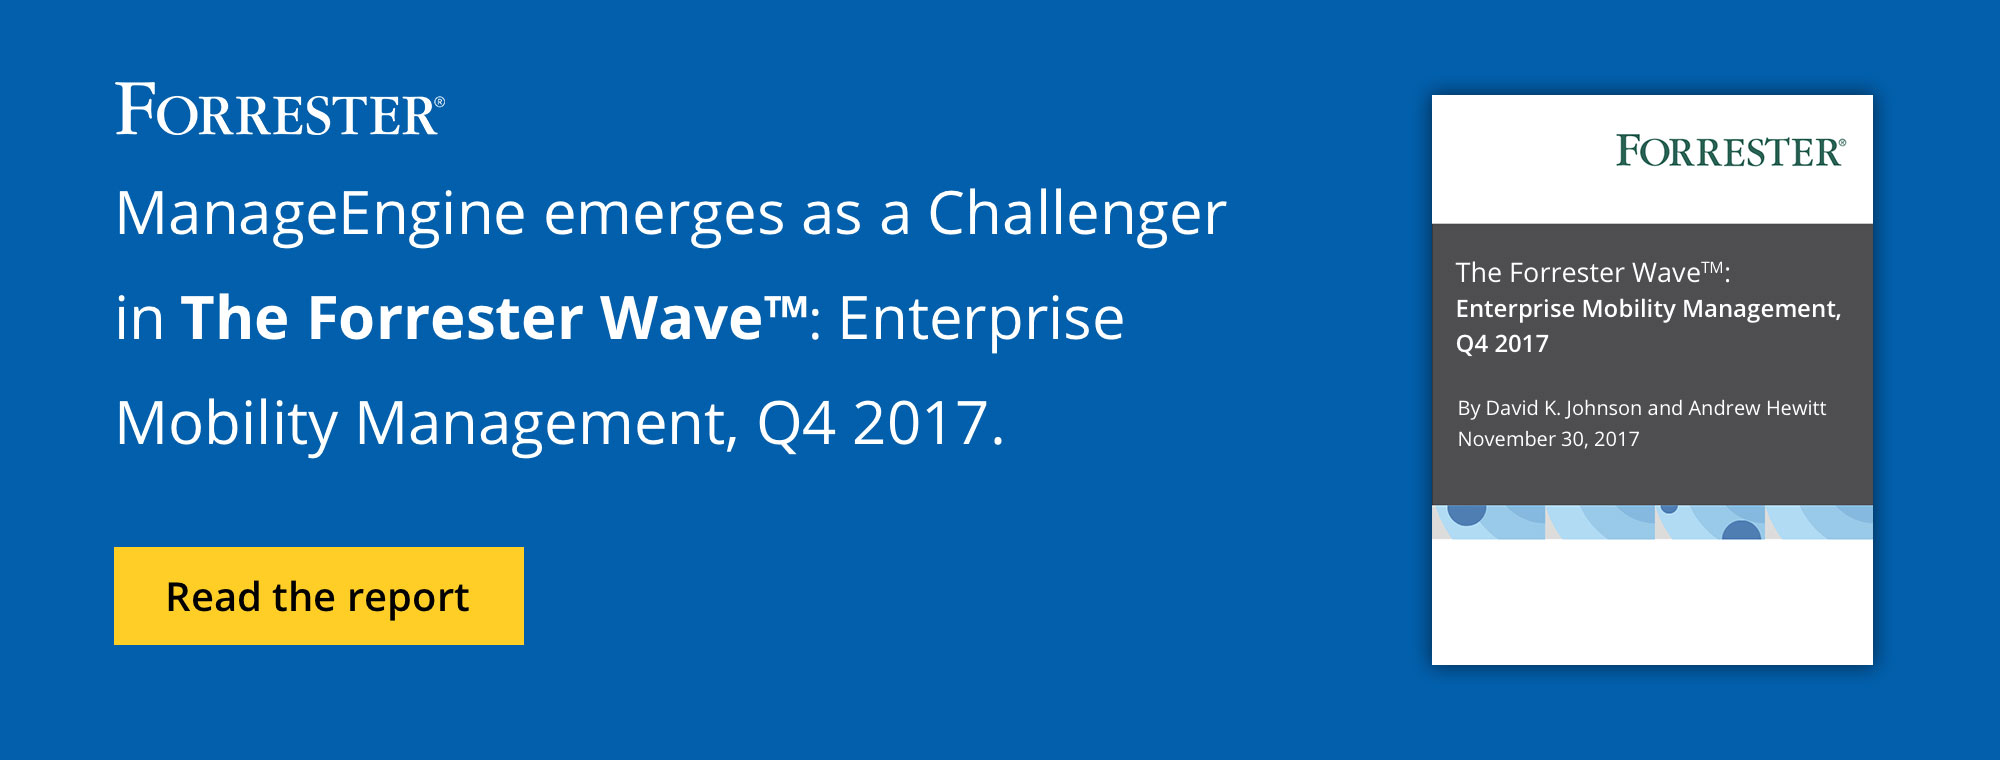 ManageEngine emerges as a Challenger  in The Forrester Wave™: Enterprise Mobility Management, Q4 2017.